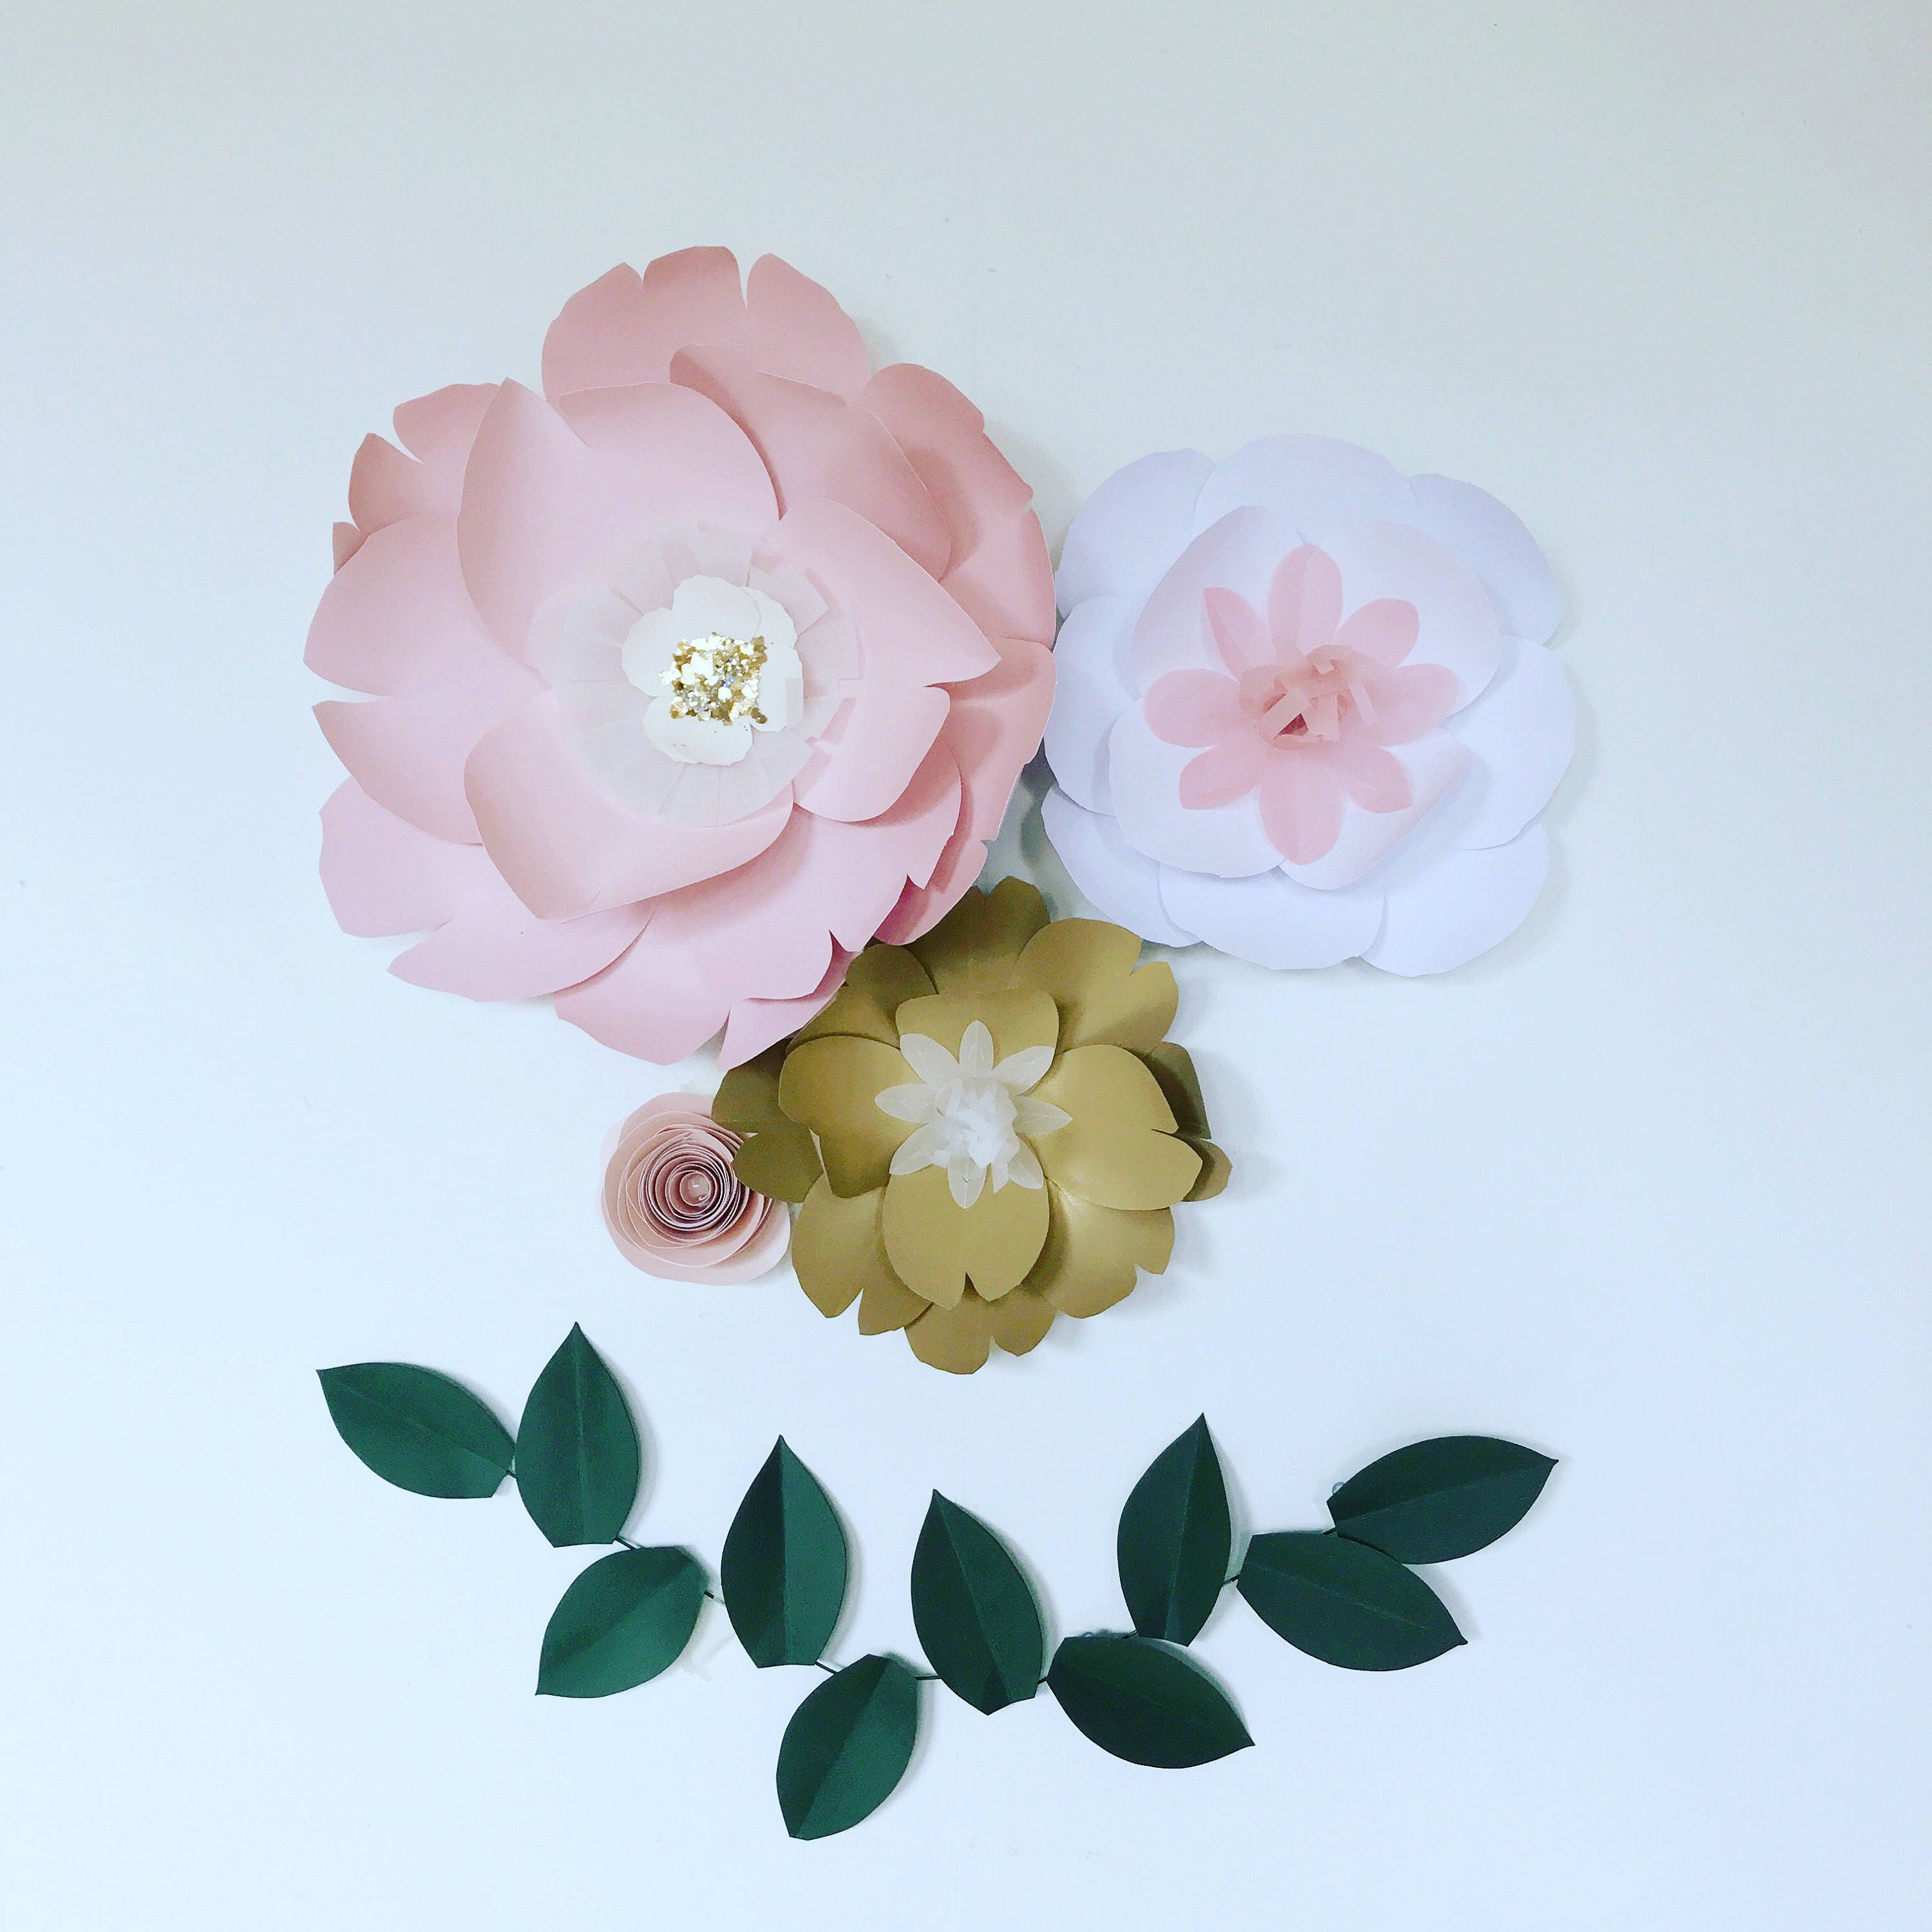 Large Paper Flowers Wall Decor, Floral Wall Art, Giant Pink / Gold / White